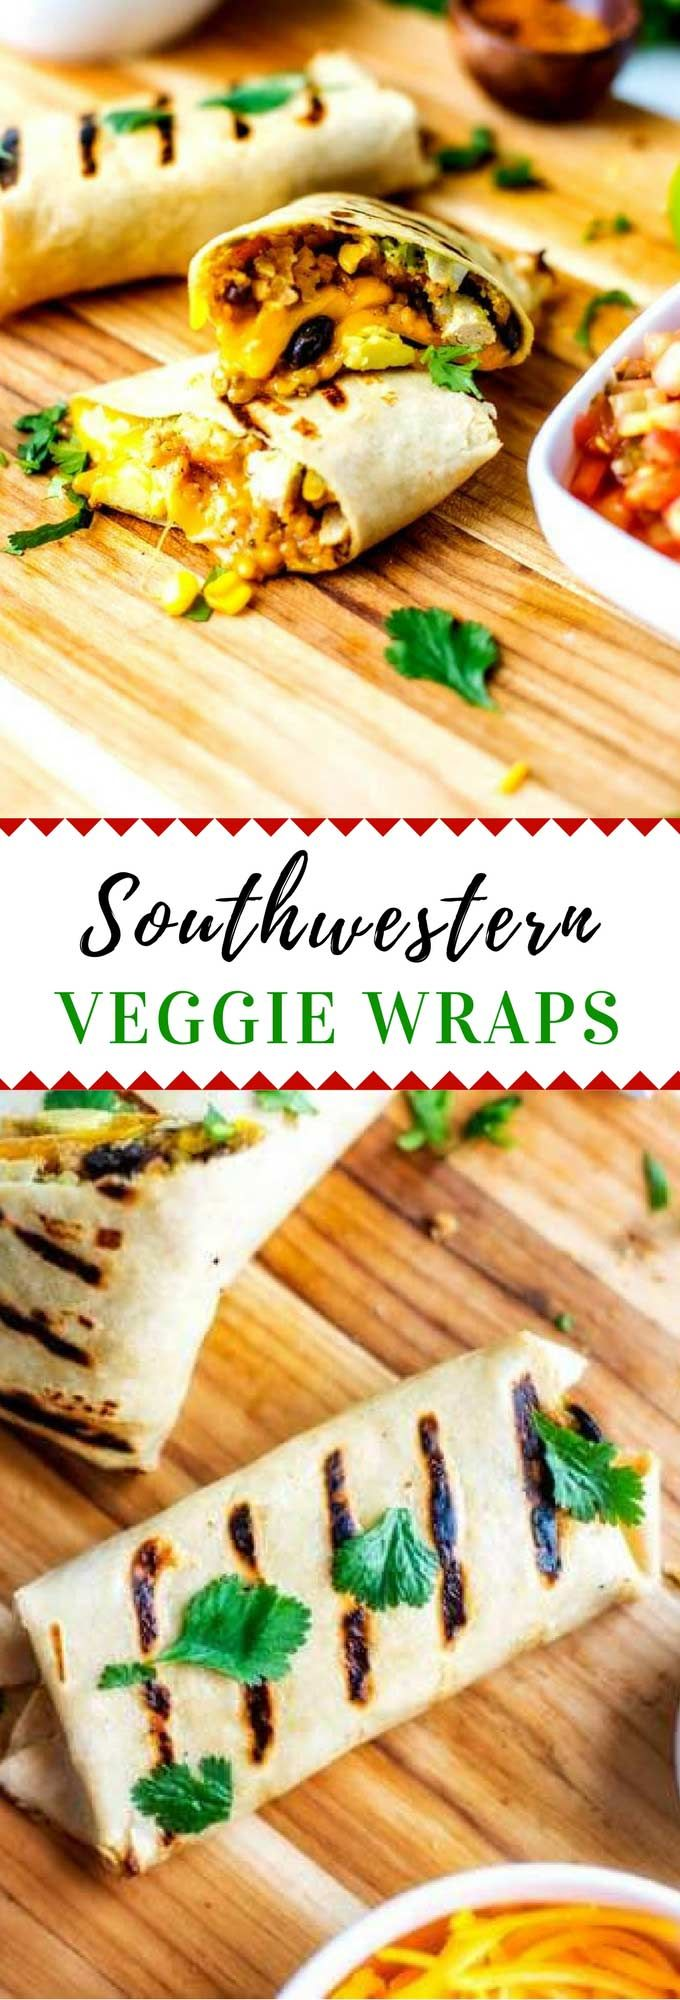 This Southwest Veggie Wrap Recipe is an easy lunch or dinner idea that the whole family will love.  It is perfect for meal prep and can be served warm or cold. Easily made into a vegan Southwestern Wrap with the use of vegan cheese. via @wendypolisi